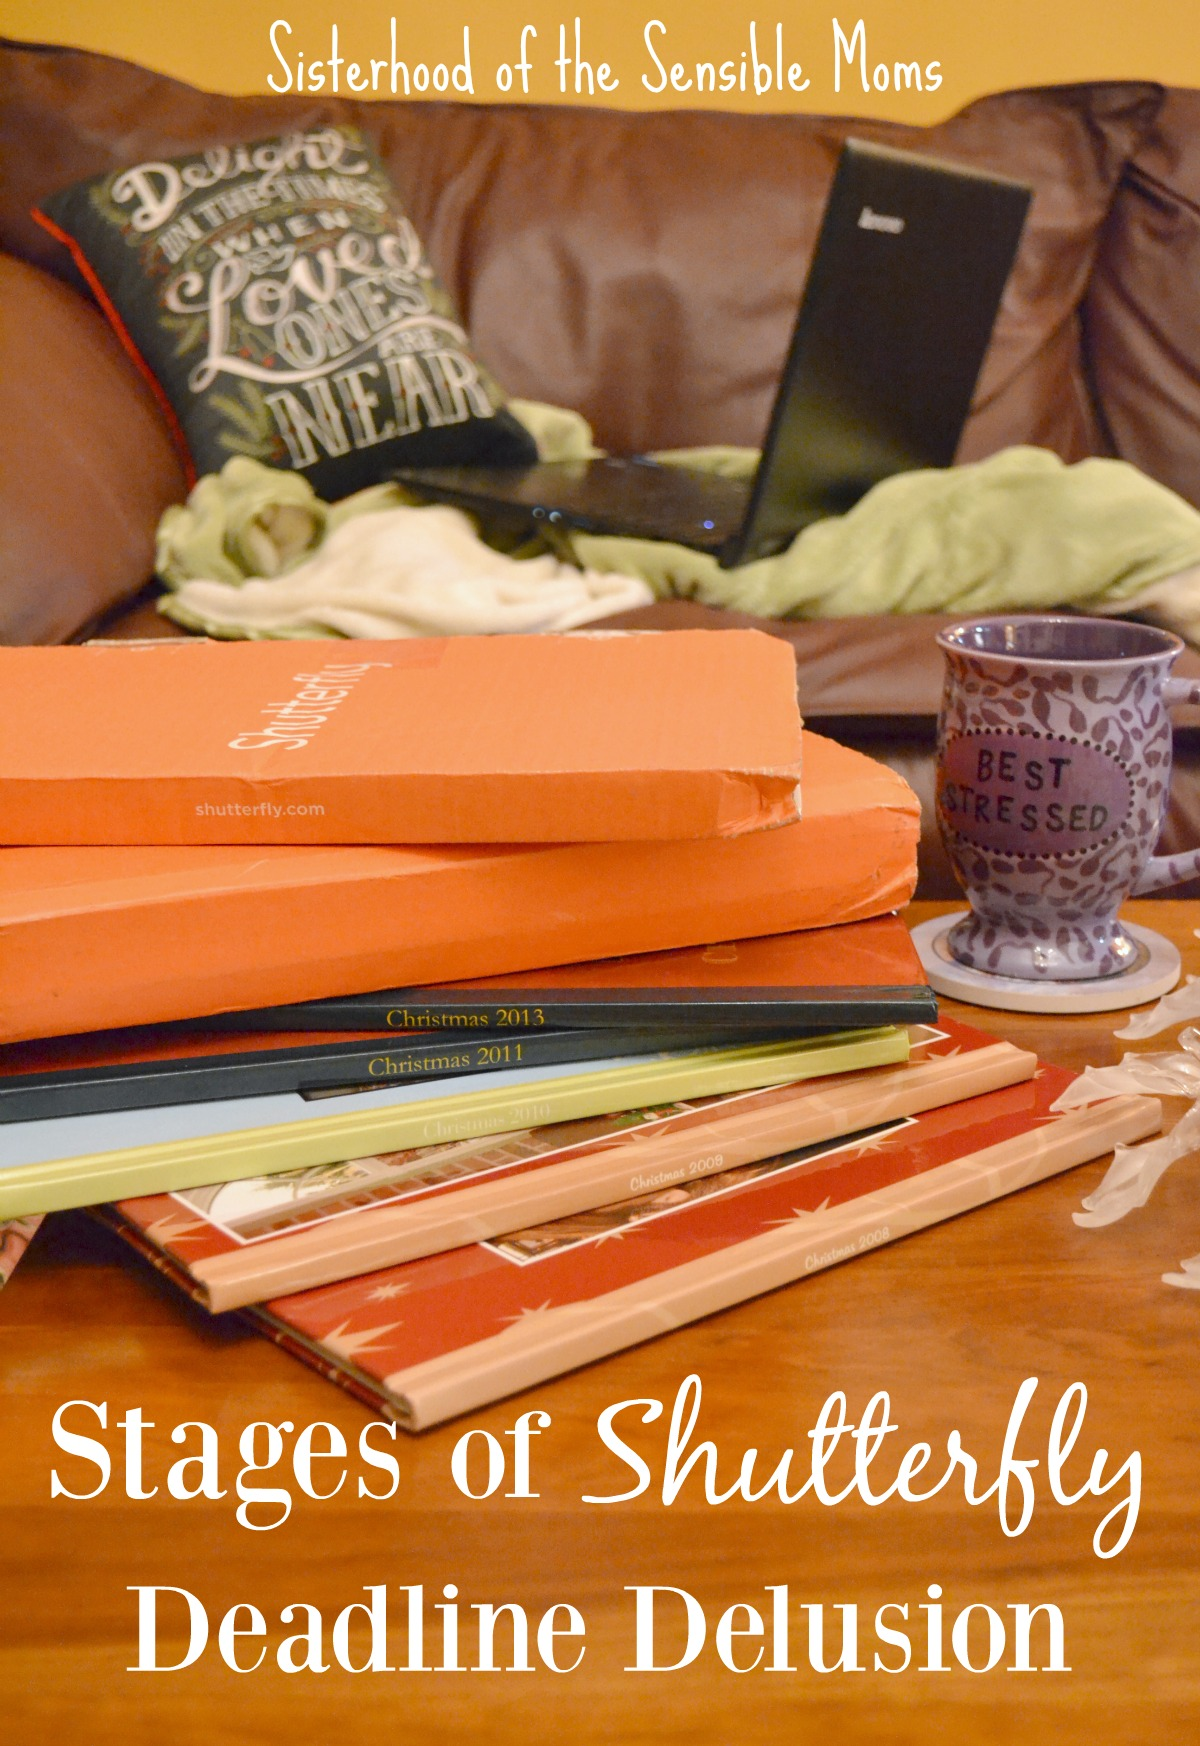 Stages of Shutterfly Deadline Delusion: Photo books are such personal, wonderful gifts . . . that will drive you to the brink of insanity as you try to make that Shutterfly deadline. |Christmas| Sisterhood of the Sensible Moms